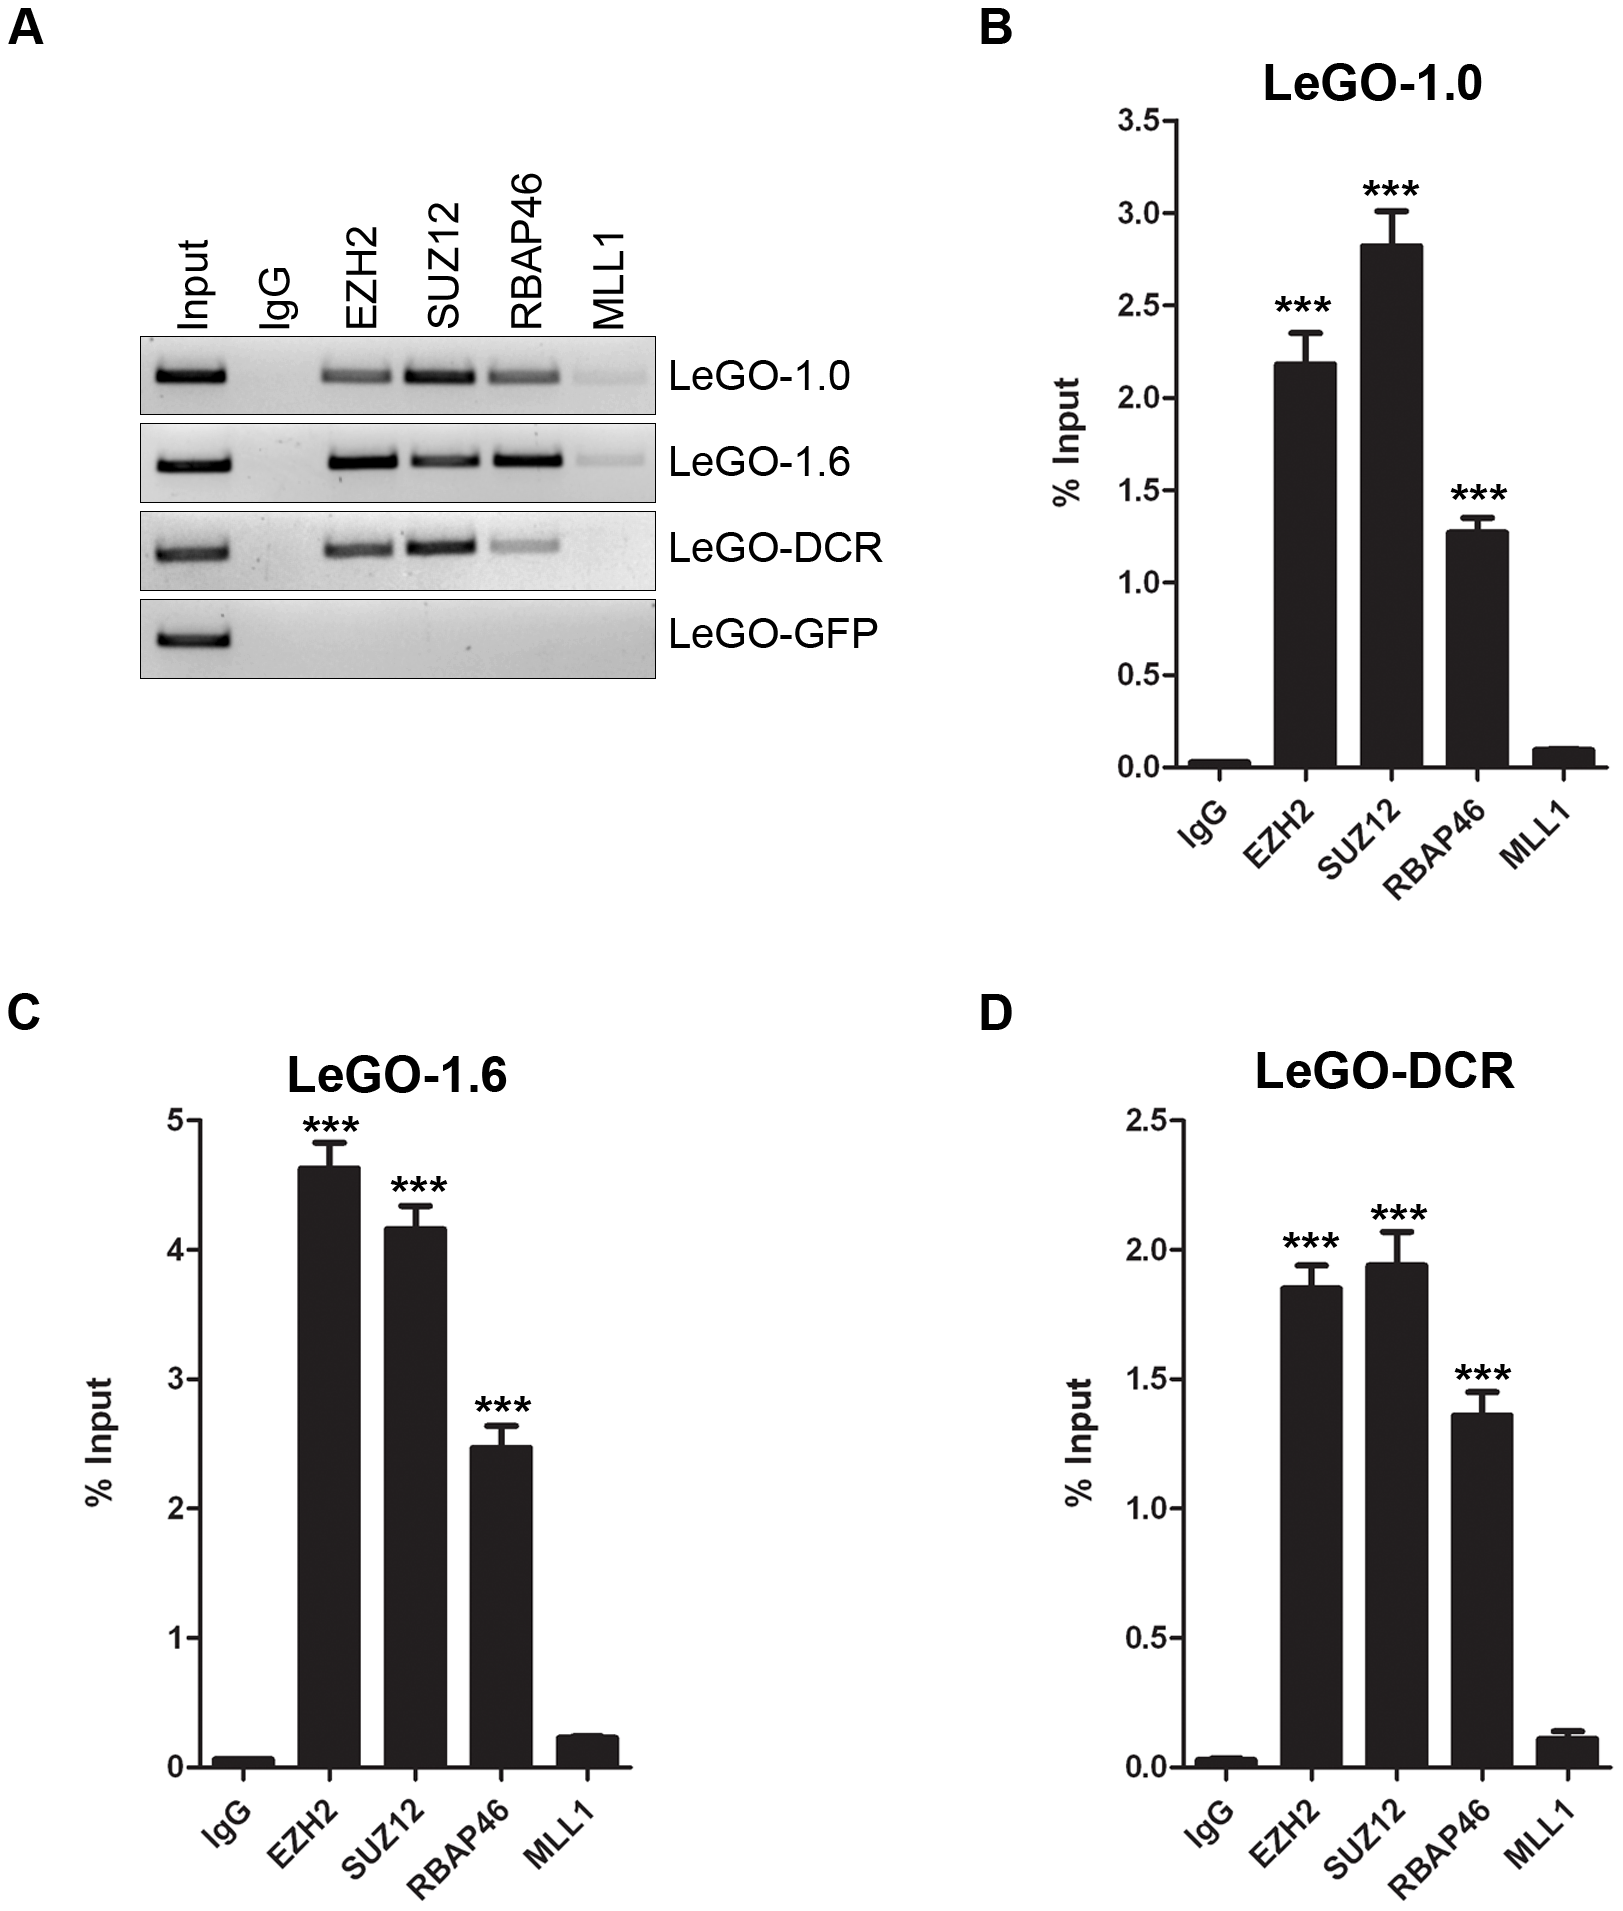 Overexpressed <i>mPINC</i> transcripts interact with PRC2 in HC11 cells.